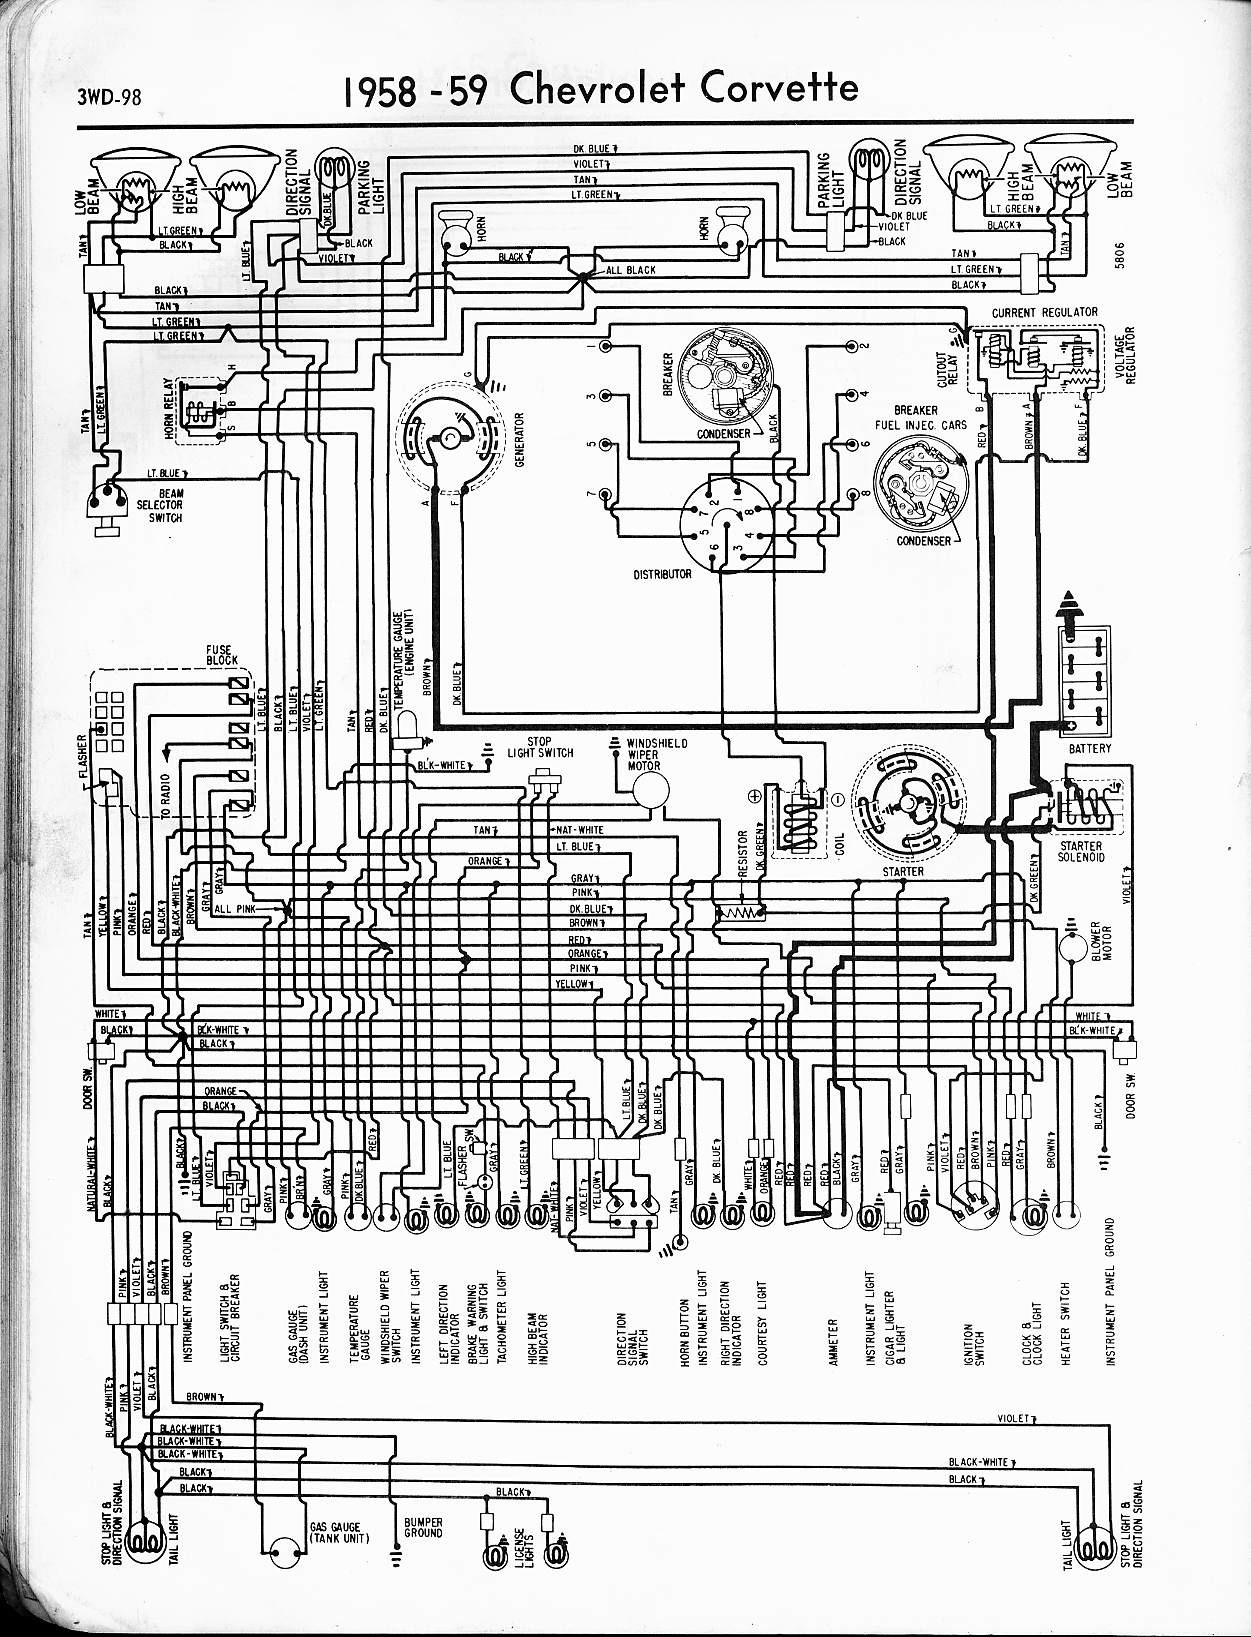 62 Impala Wiring Diagrams - Wiring Data